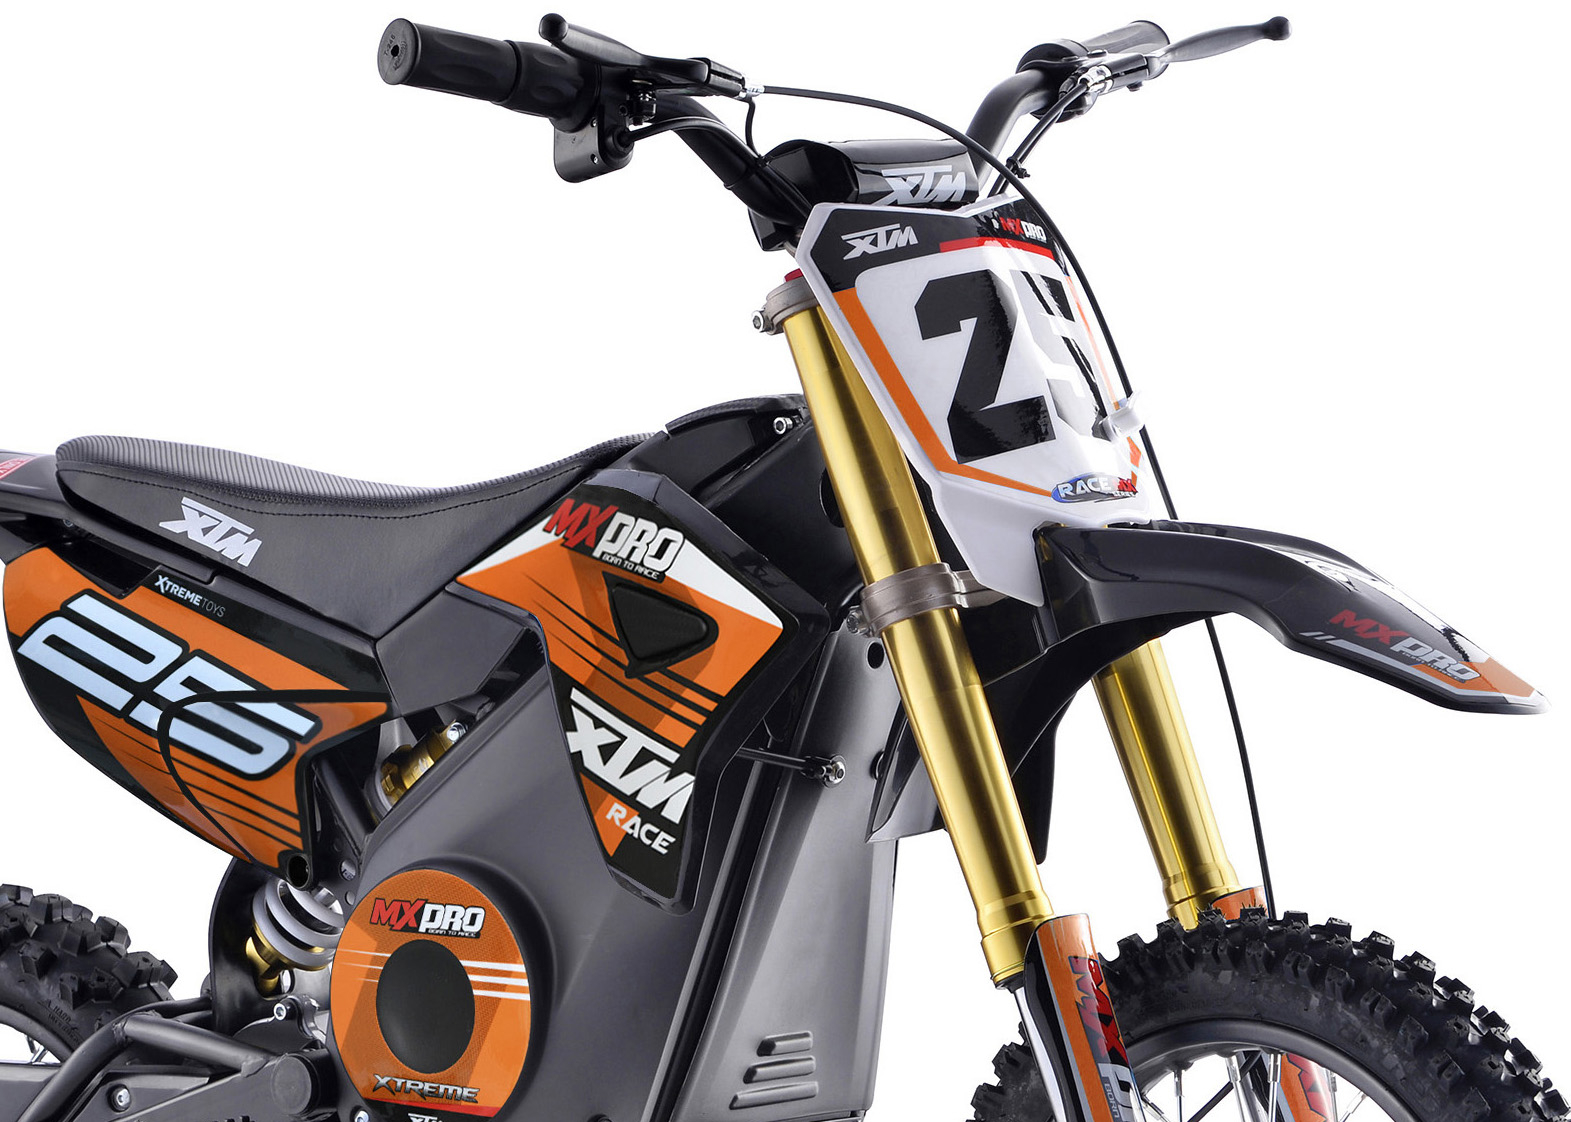 Front Hydraulic Inverted Forks